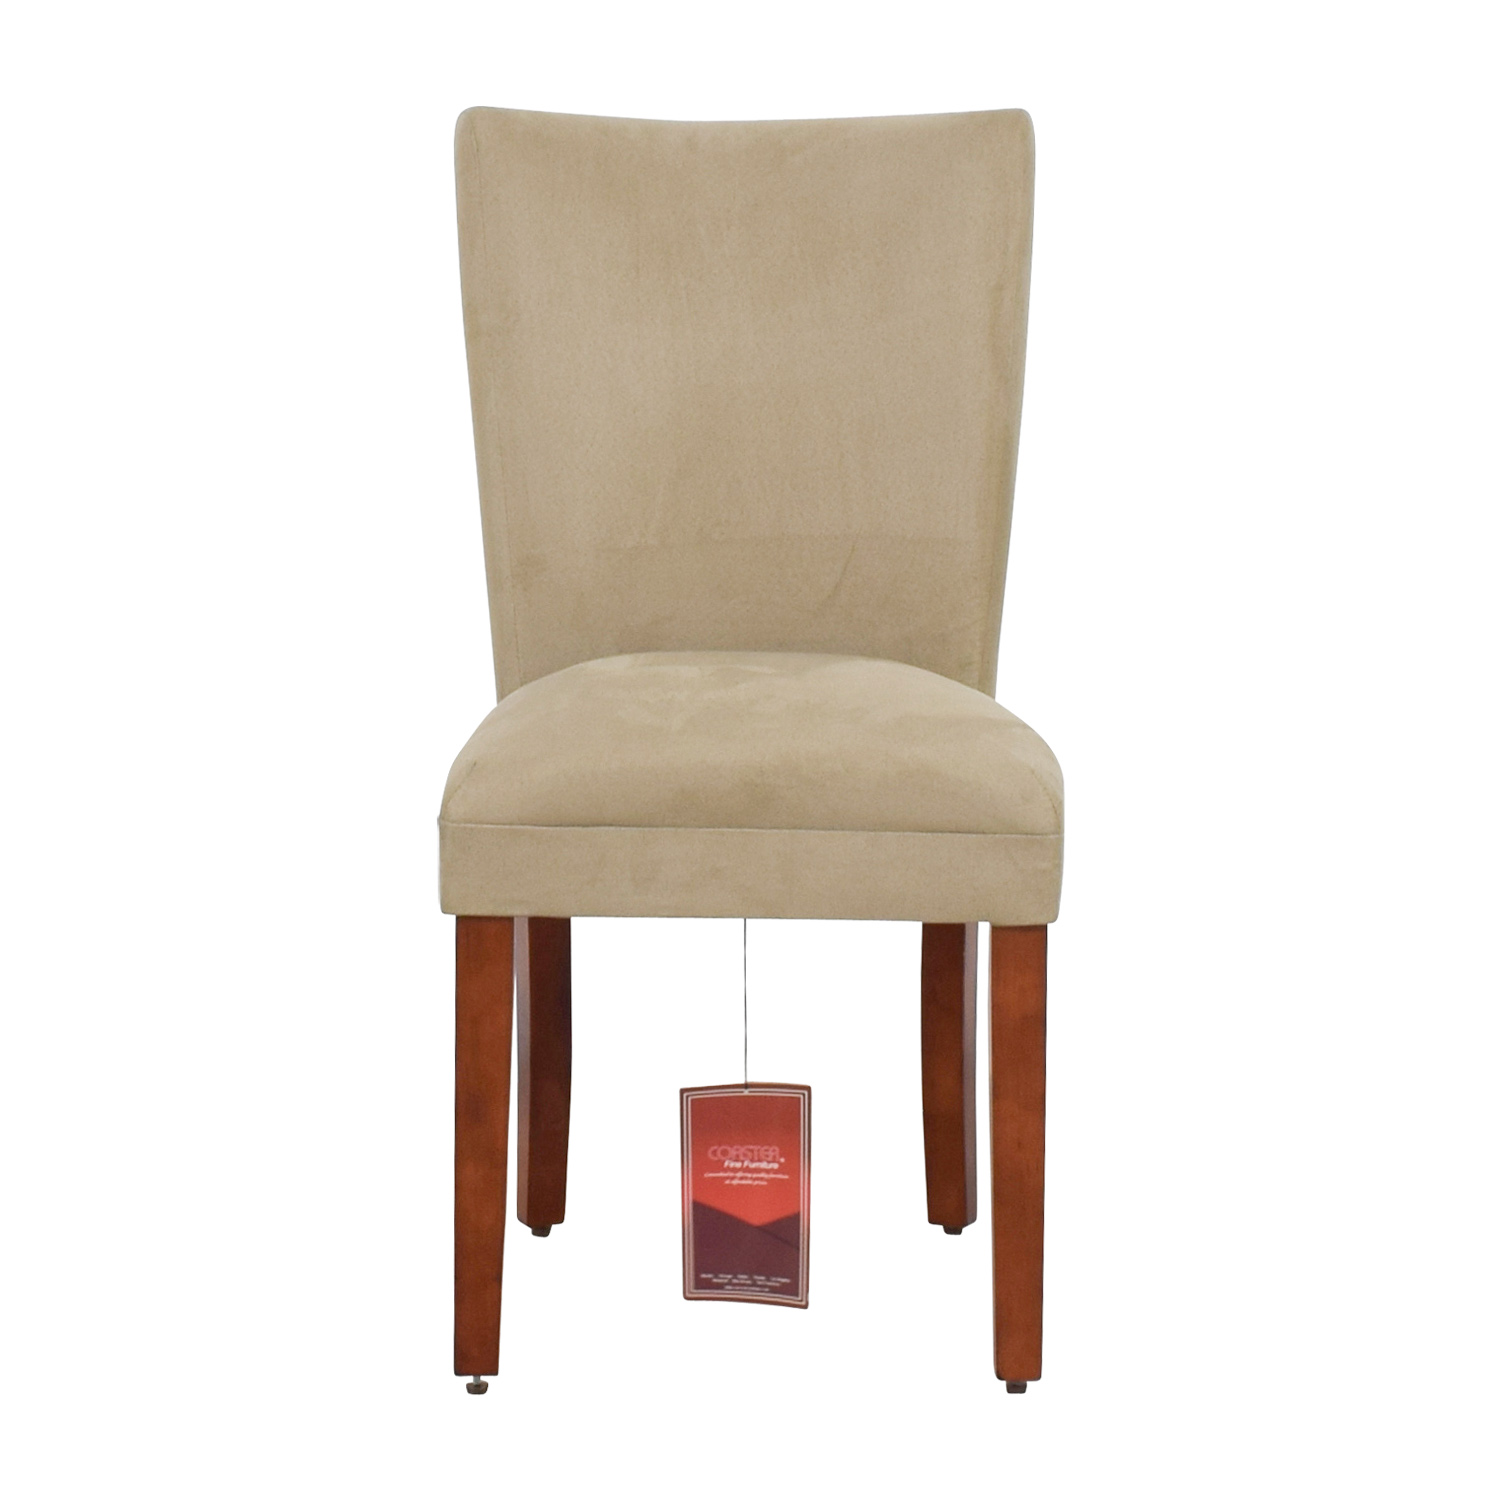 Coaster High Back Parsons Chair in Taupe Microfiber Fabric / Dining Chairs